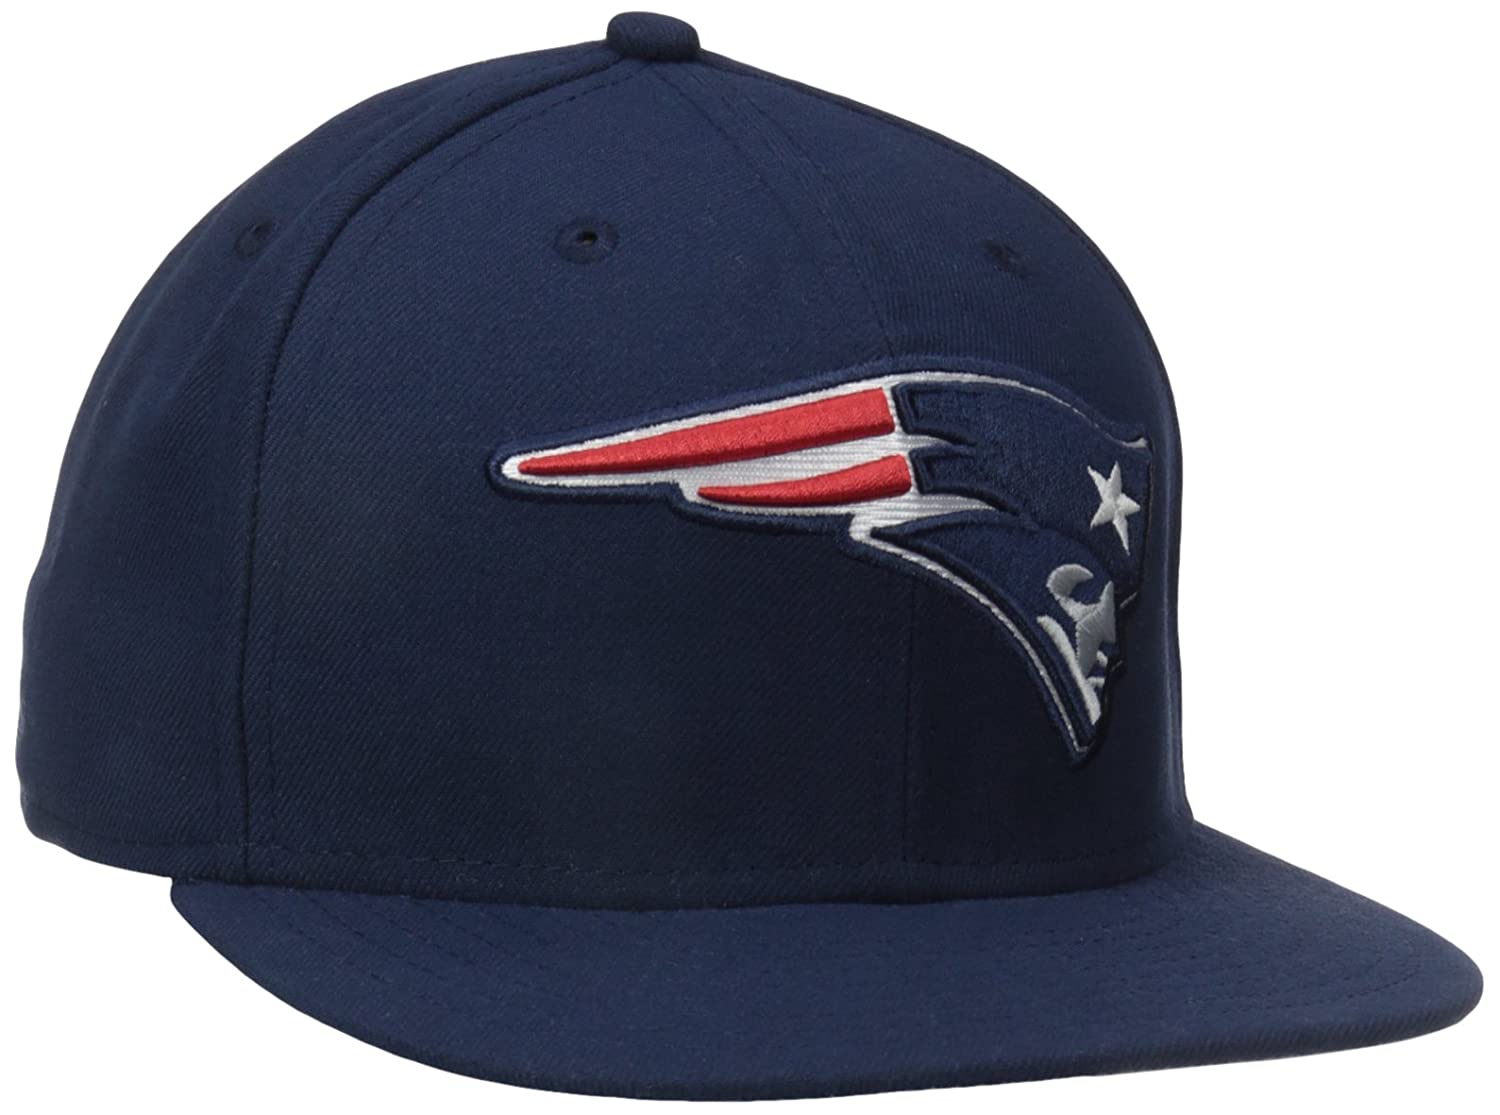 NFL Mens New England Patriots On Field 5950 Navy Game Cap By New Era New Era Cap Company 10529760-Navy-P